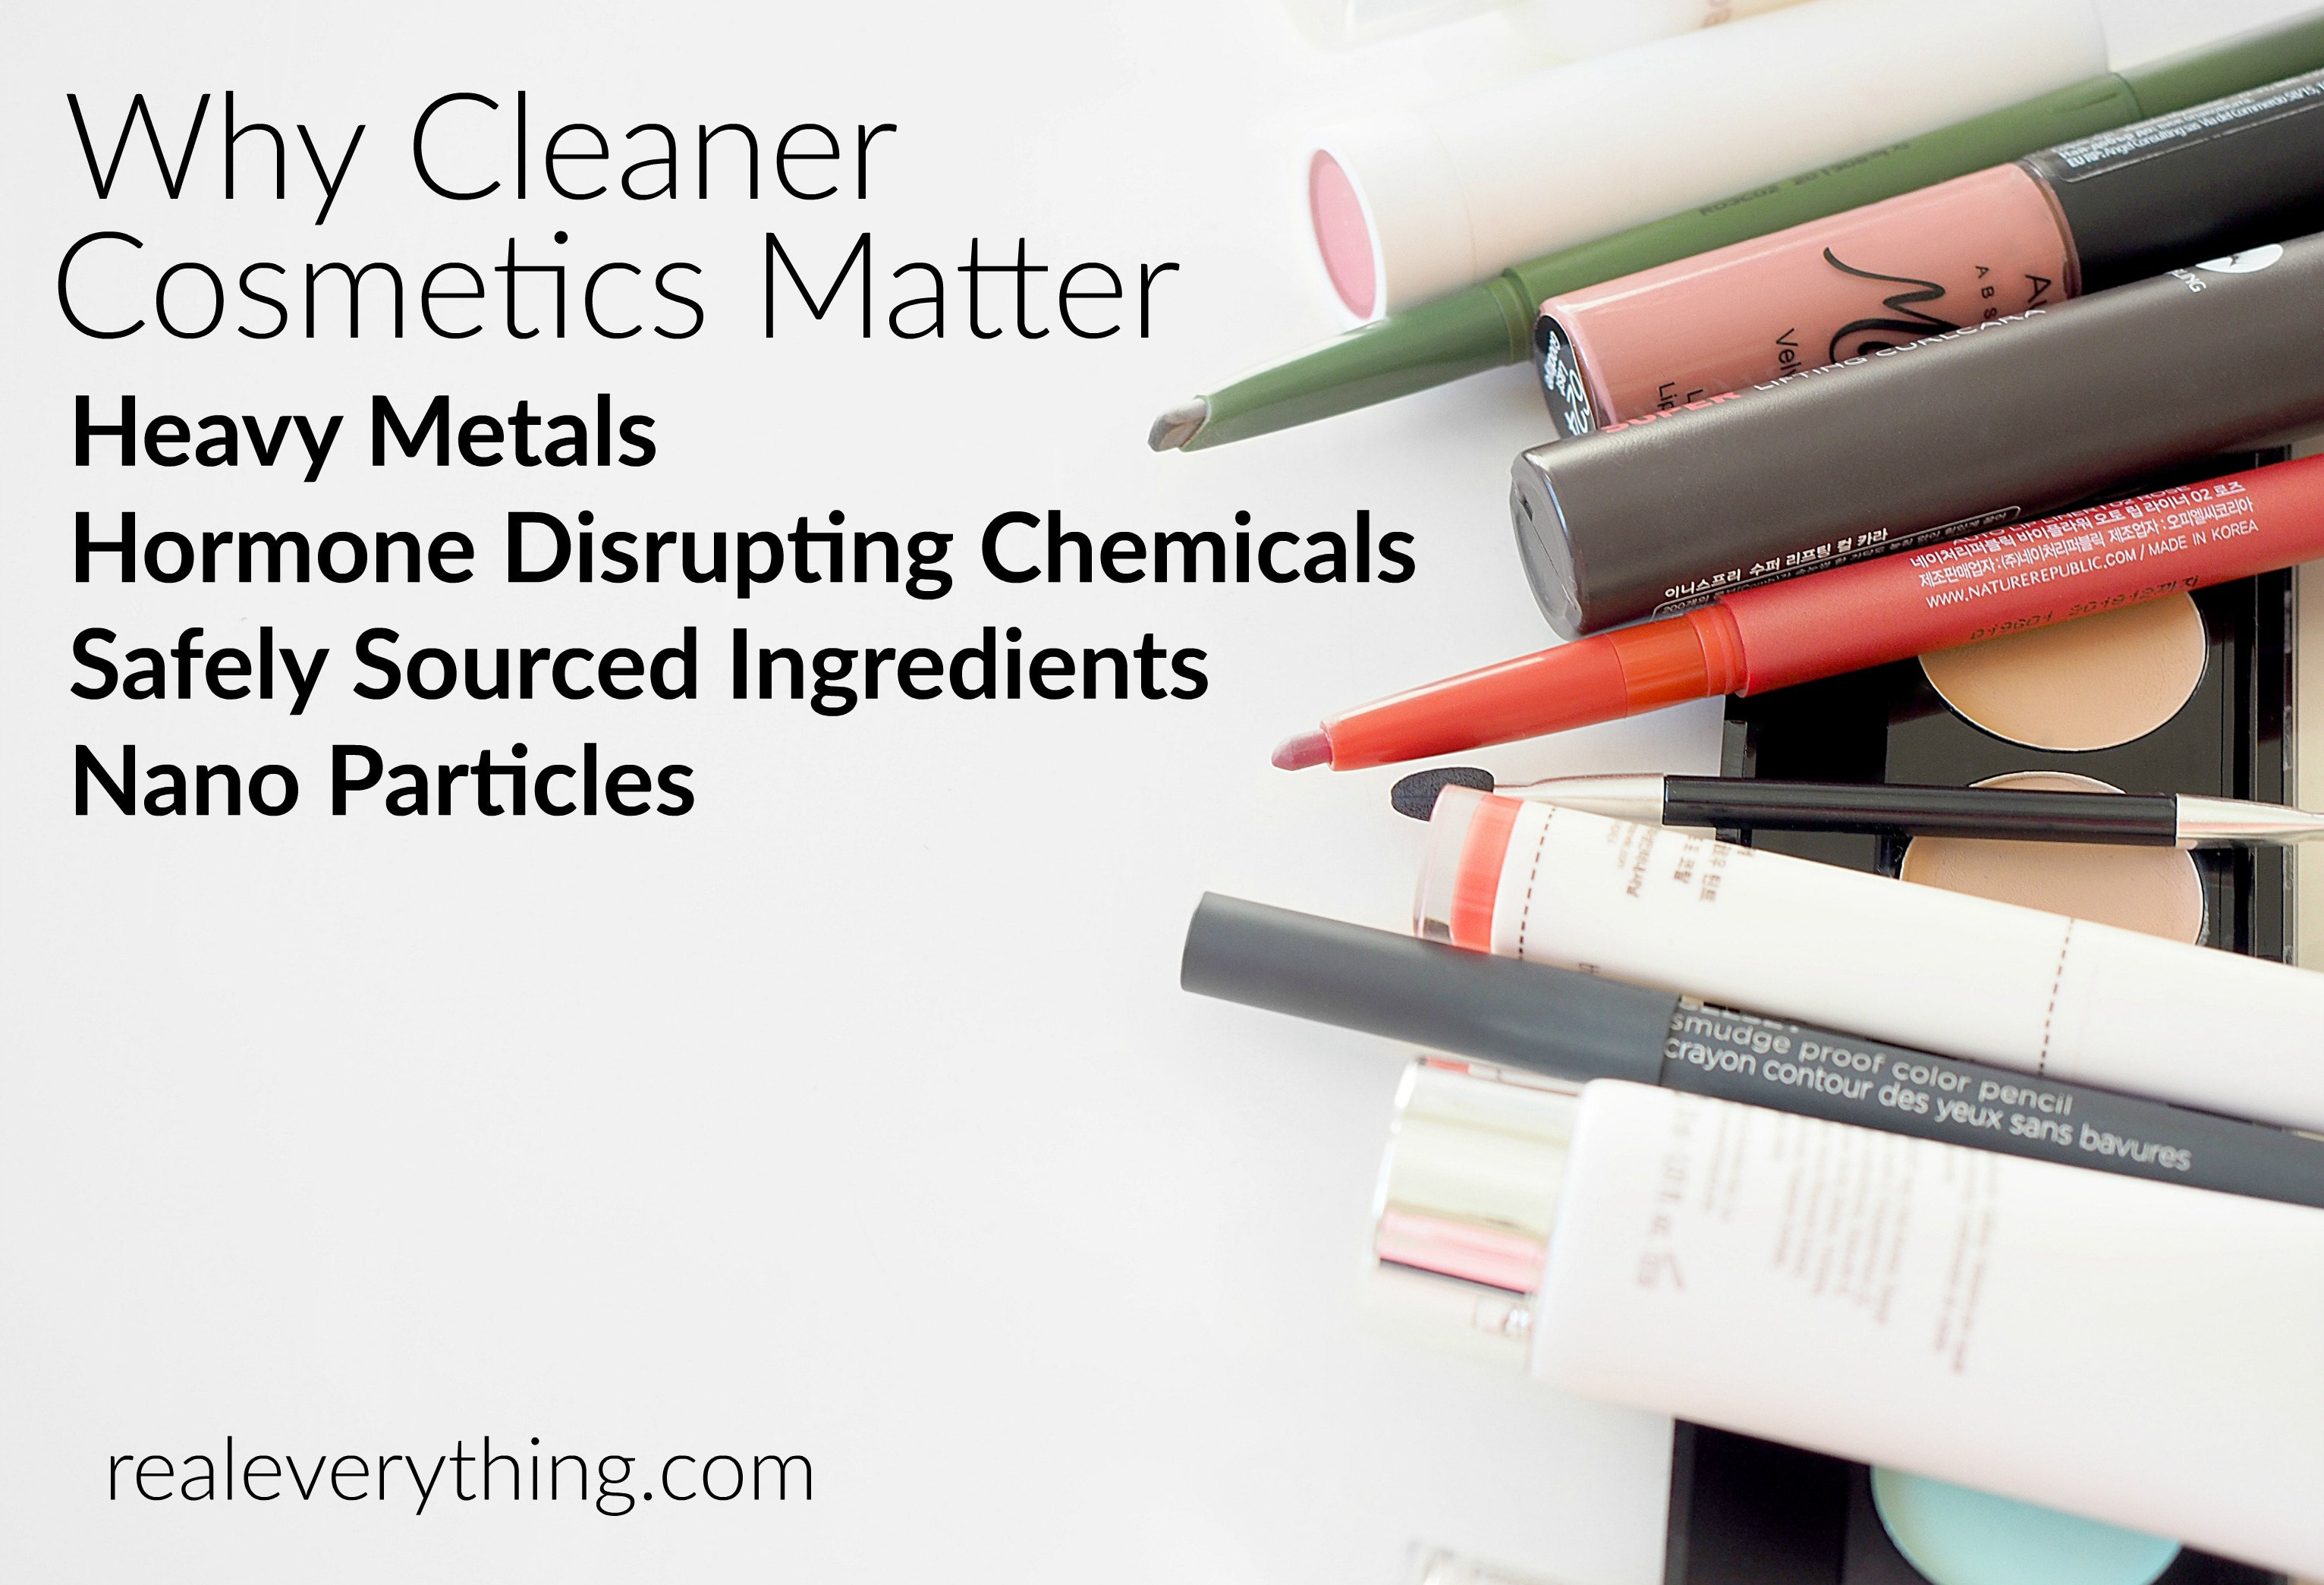 Evidence Linking Chemicals And Learning >> Why Cleaner Cosmetics Matter Heavy Metals Hormone Disrupting